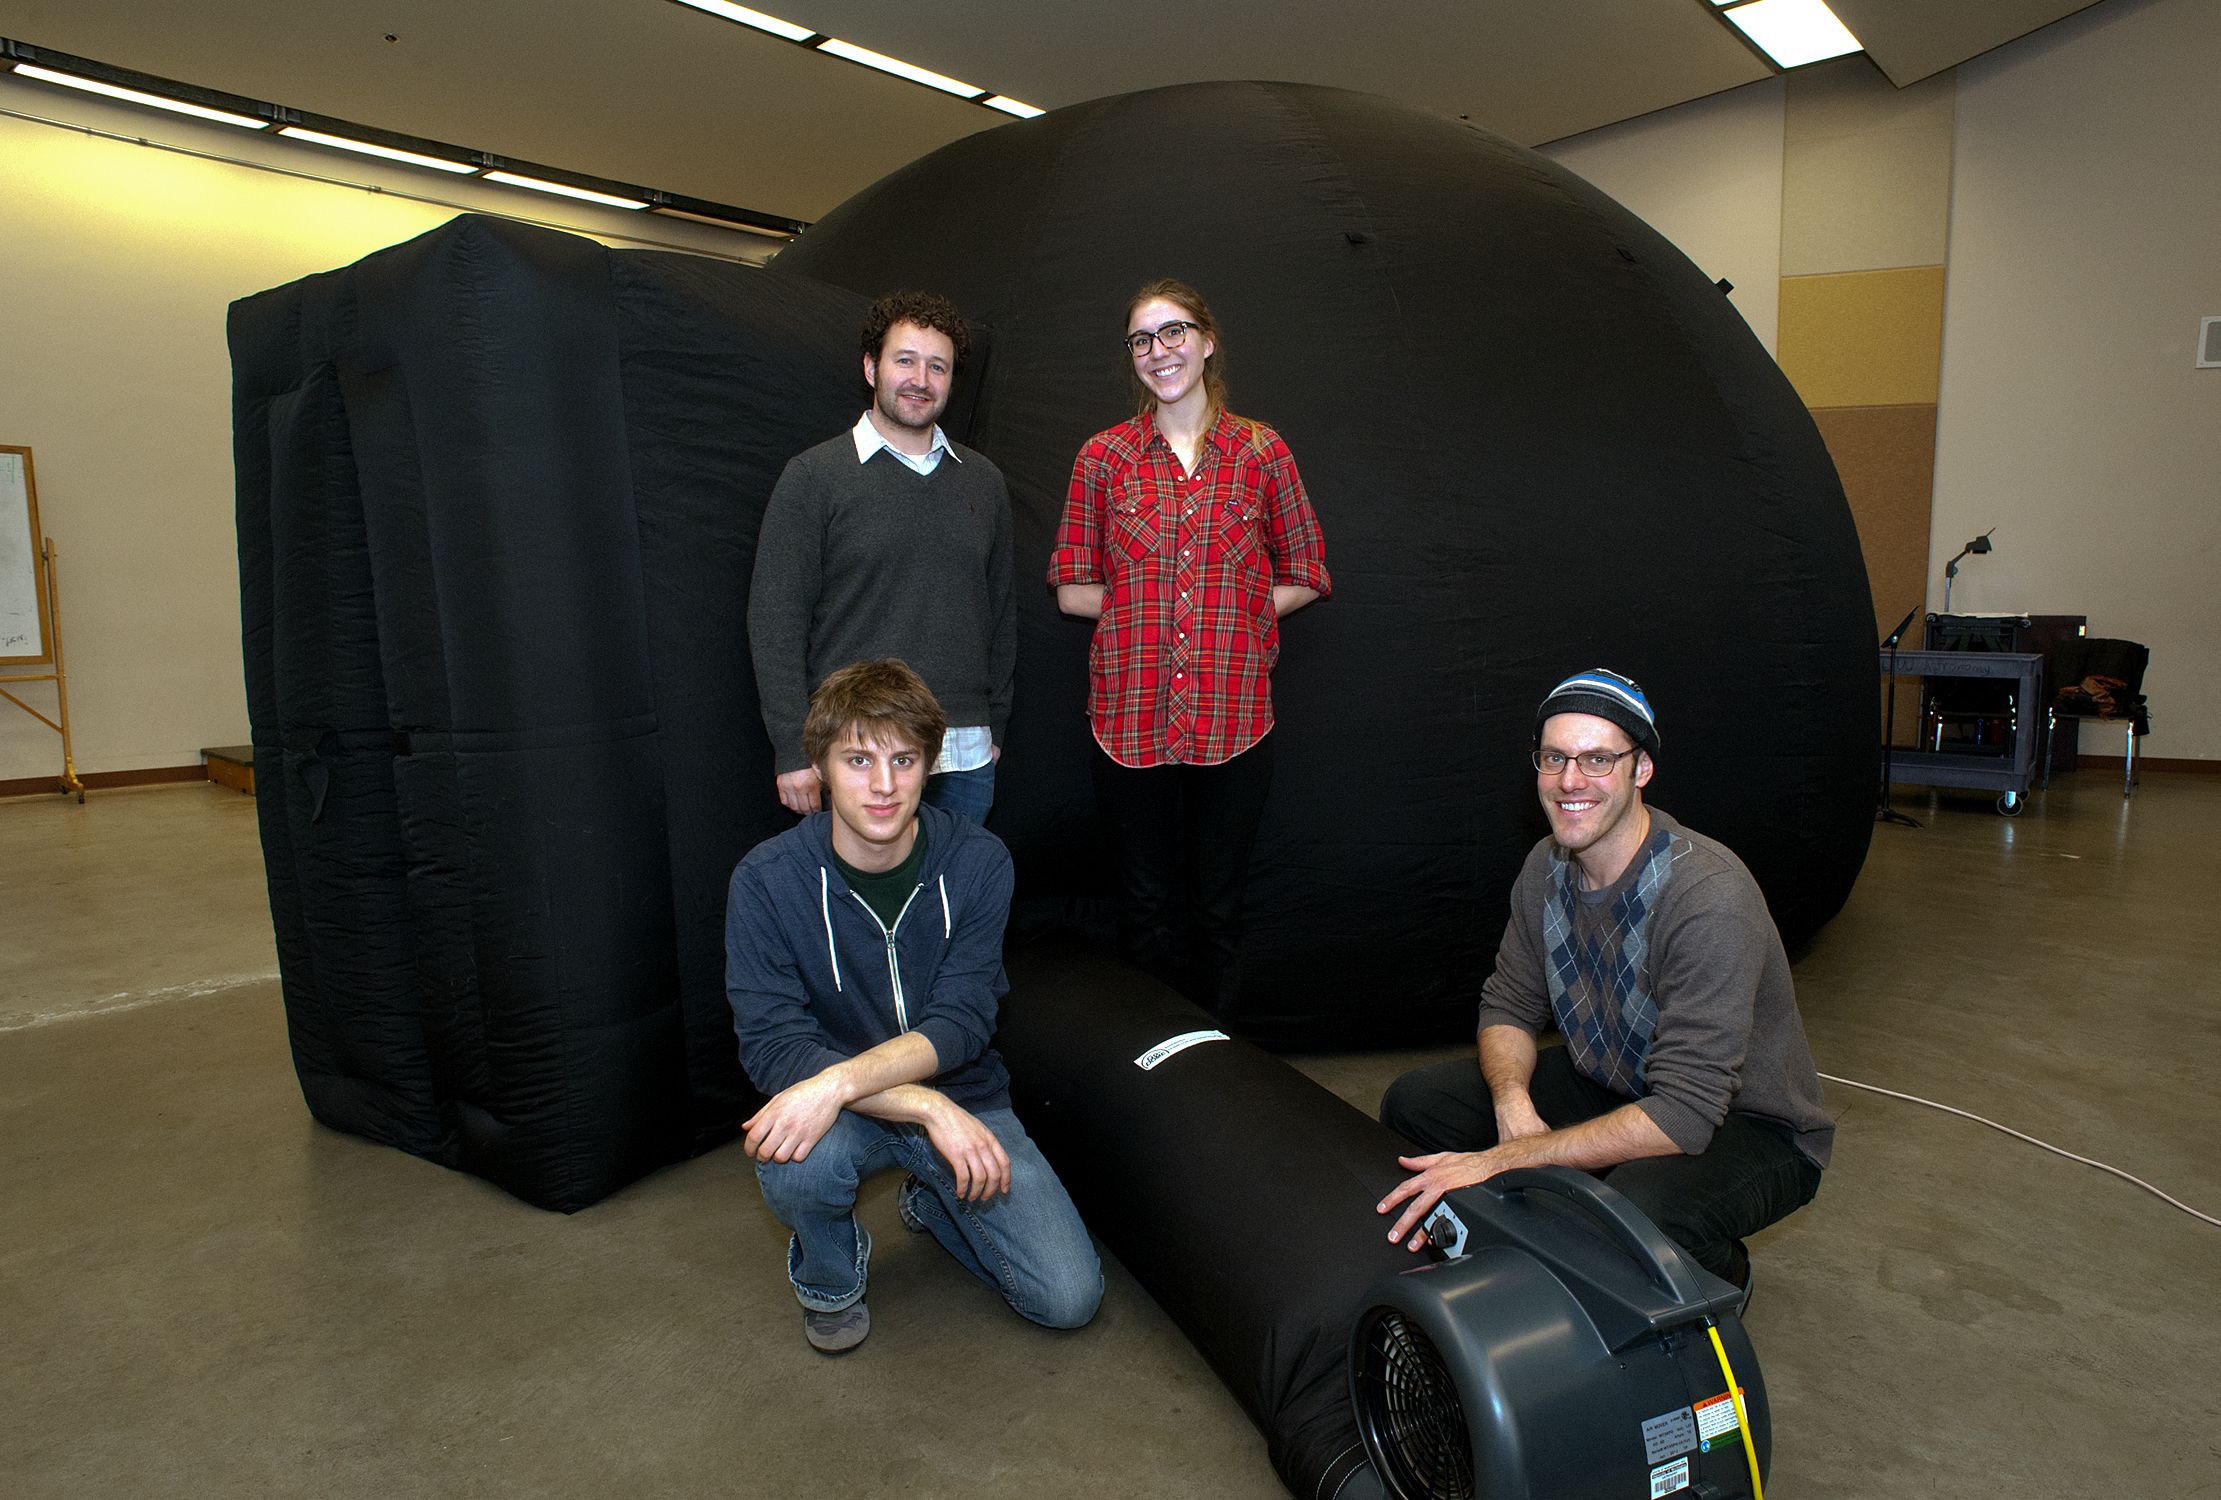 The UW astronomy department's new portable planetarium may look like an inflated igloo, but it is actually an innovative teaching tool, and will enable young students to create their own planetarium shows. Team members from left are Justin Gailey, Phil Rosenfeld, Nell Byler and Oliver Fraser.